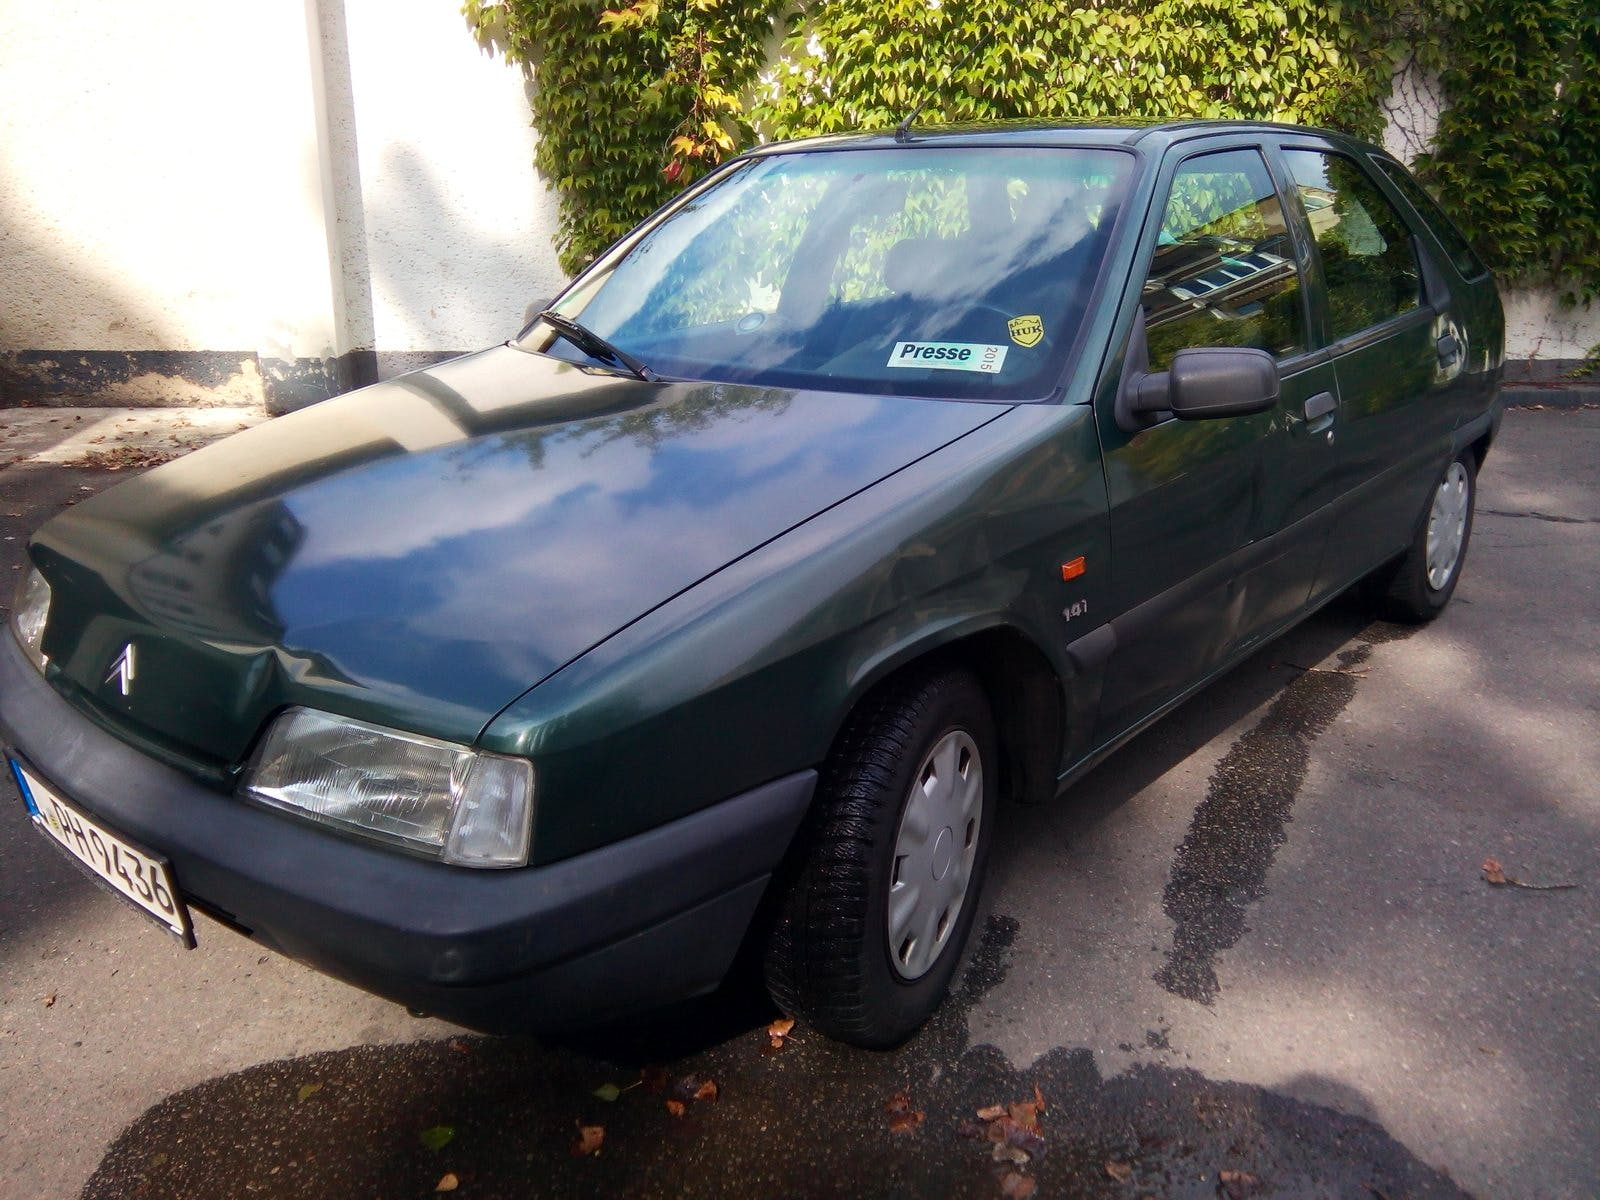 Citroen ZX 1,4 i mit Dachbox